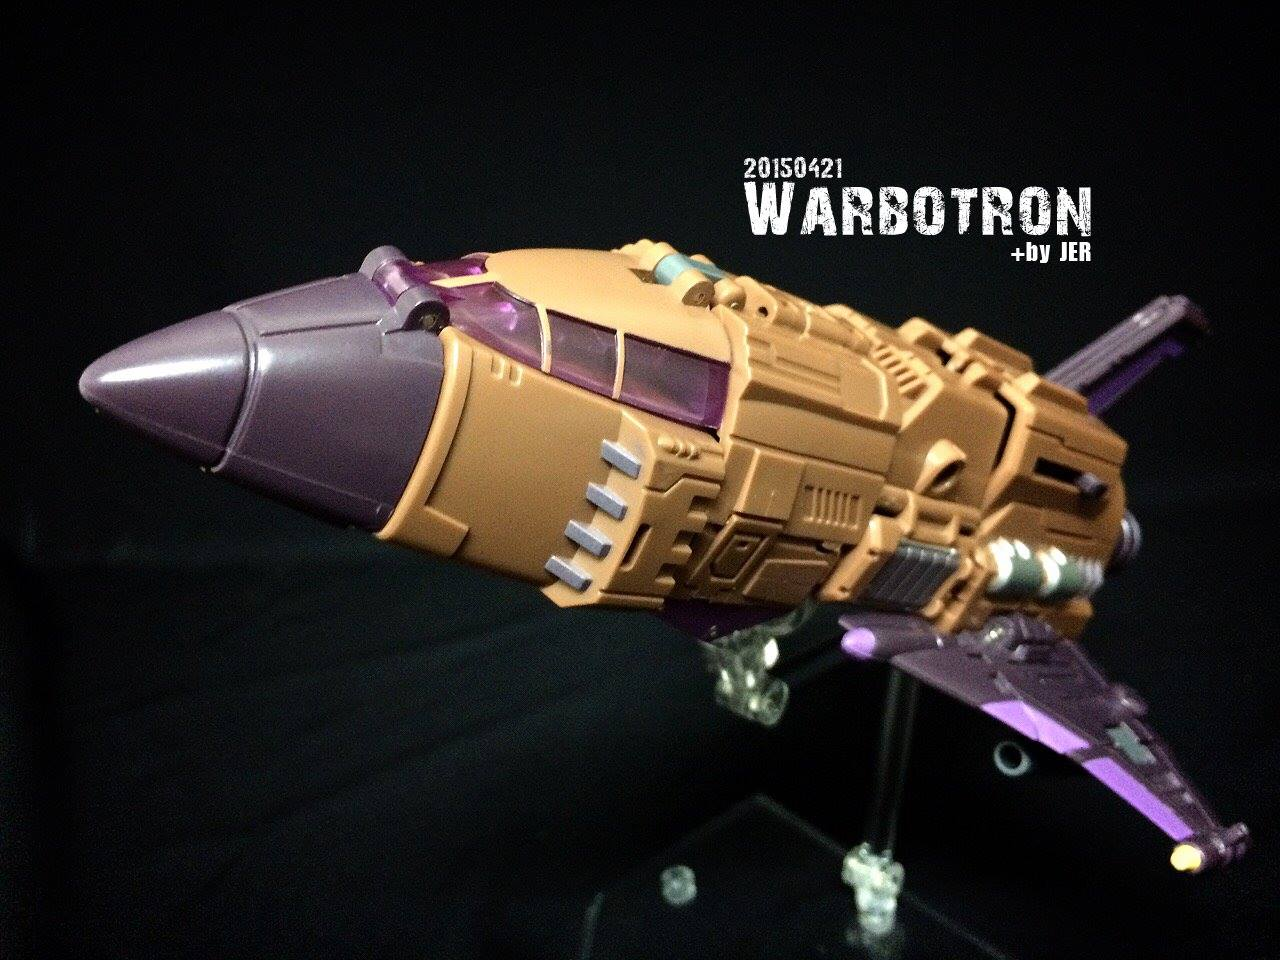 Warbotron - WB01 (Unofficial Bruticus)-11118485_633409390091901_6740217492421054105_o-1-.jpg